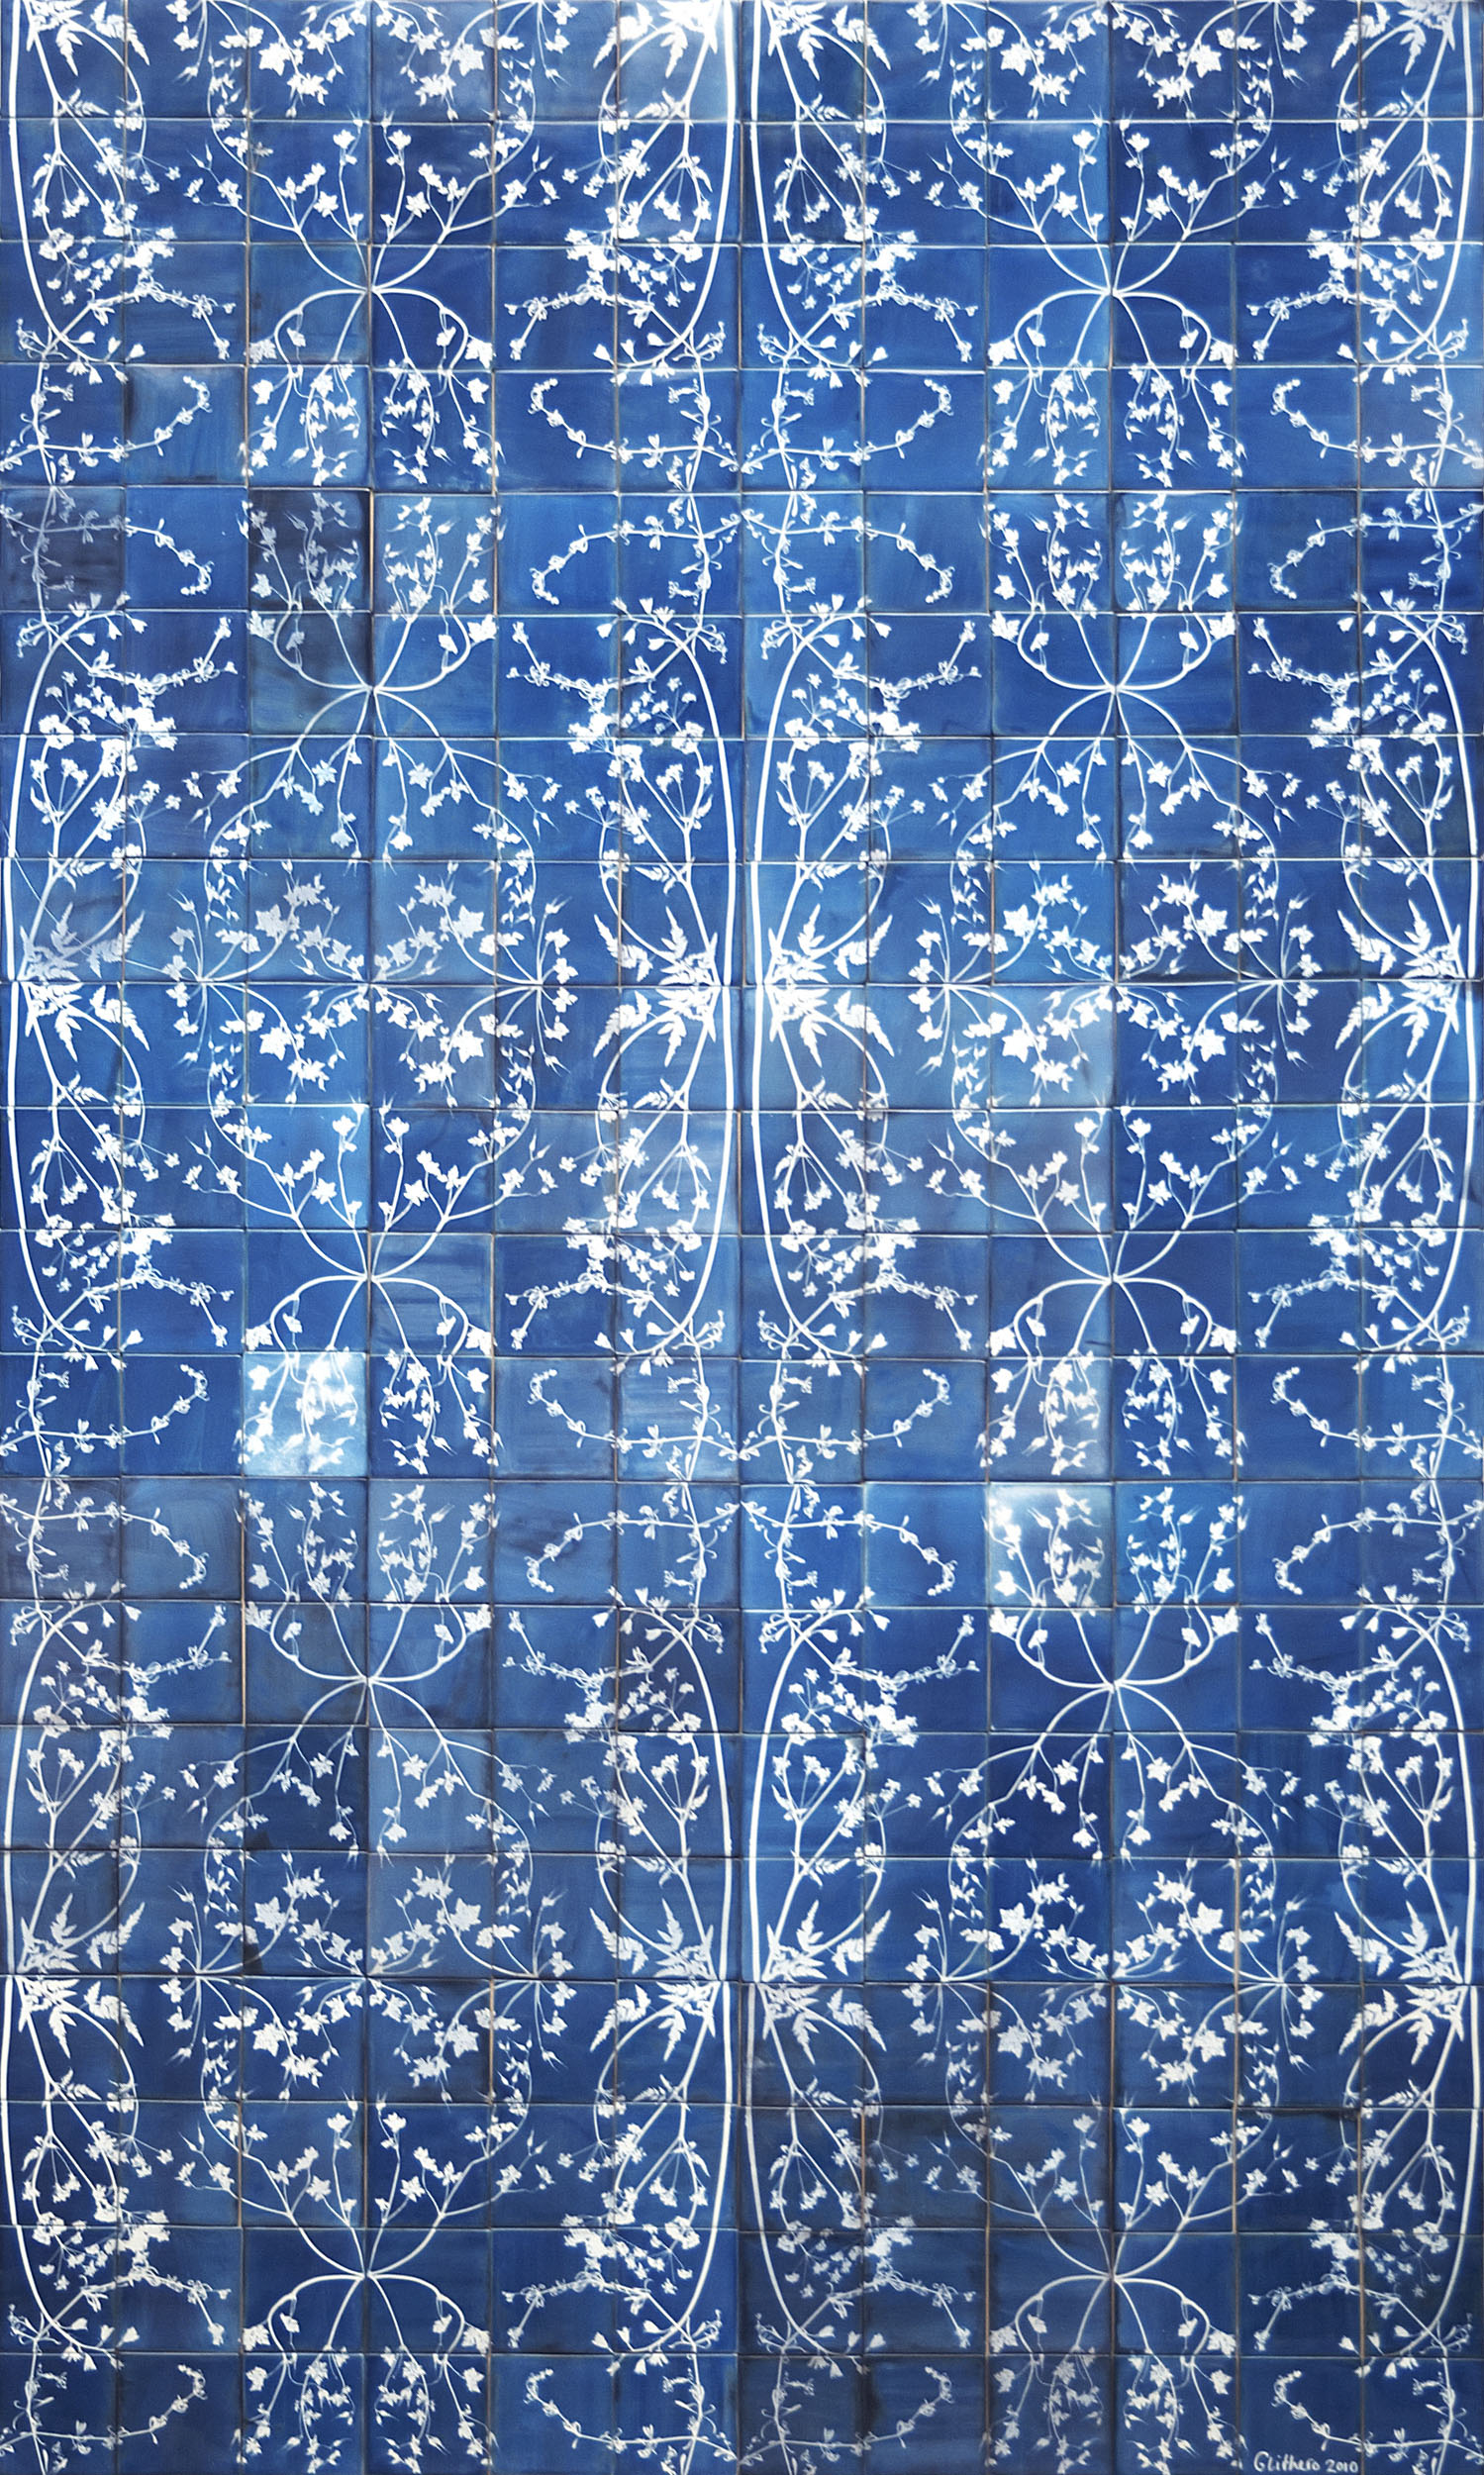 A Blueware tile mural with cyanotype photograms of pressed weeds with 5 lines of symmetry